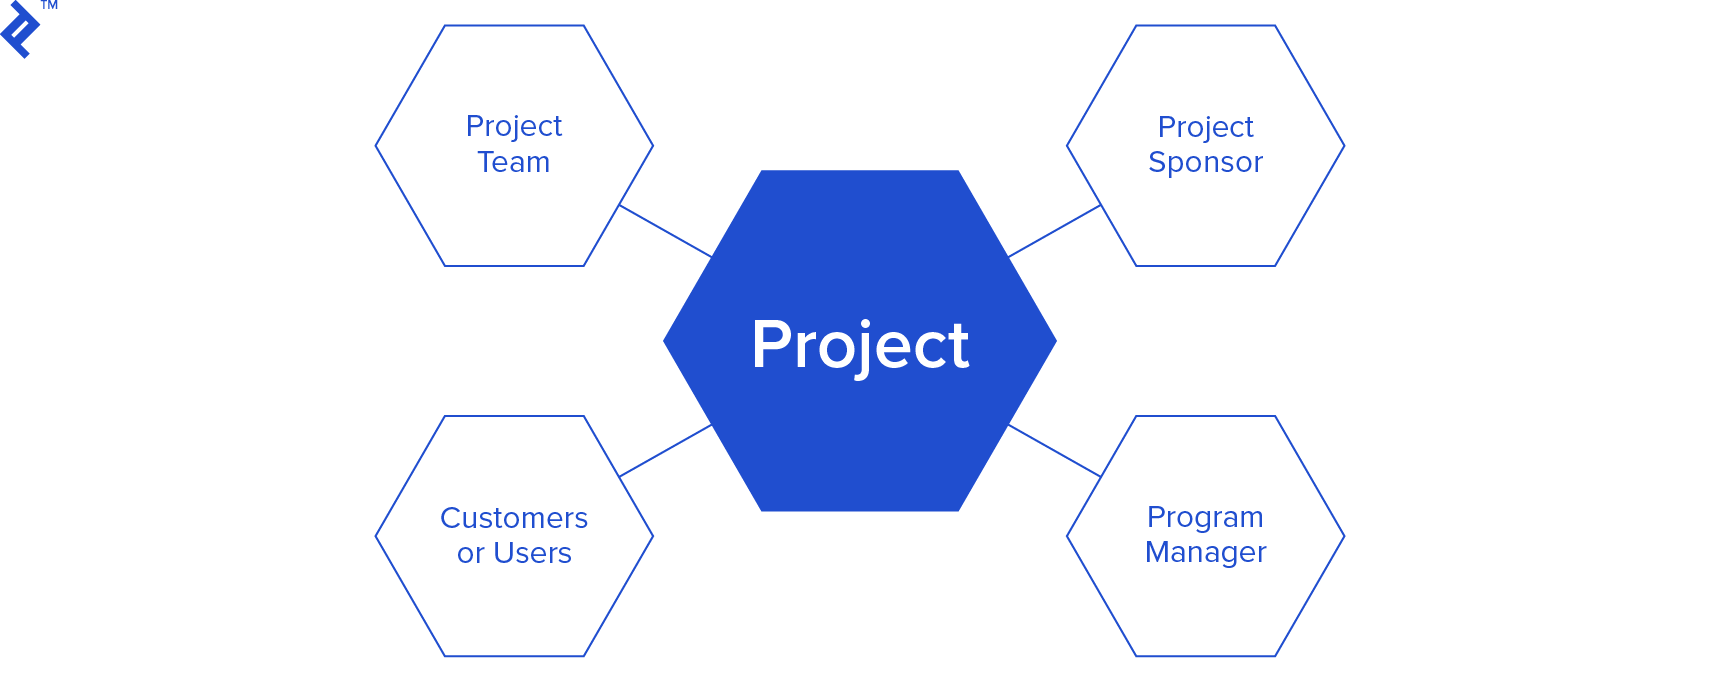 Key stakeholders during the initial phase of project takeover